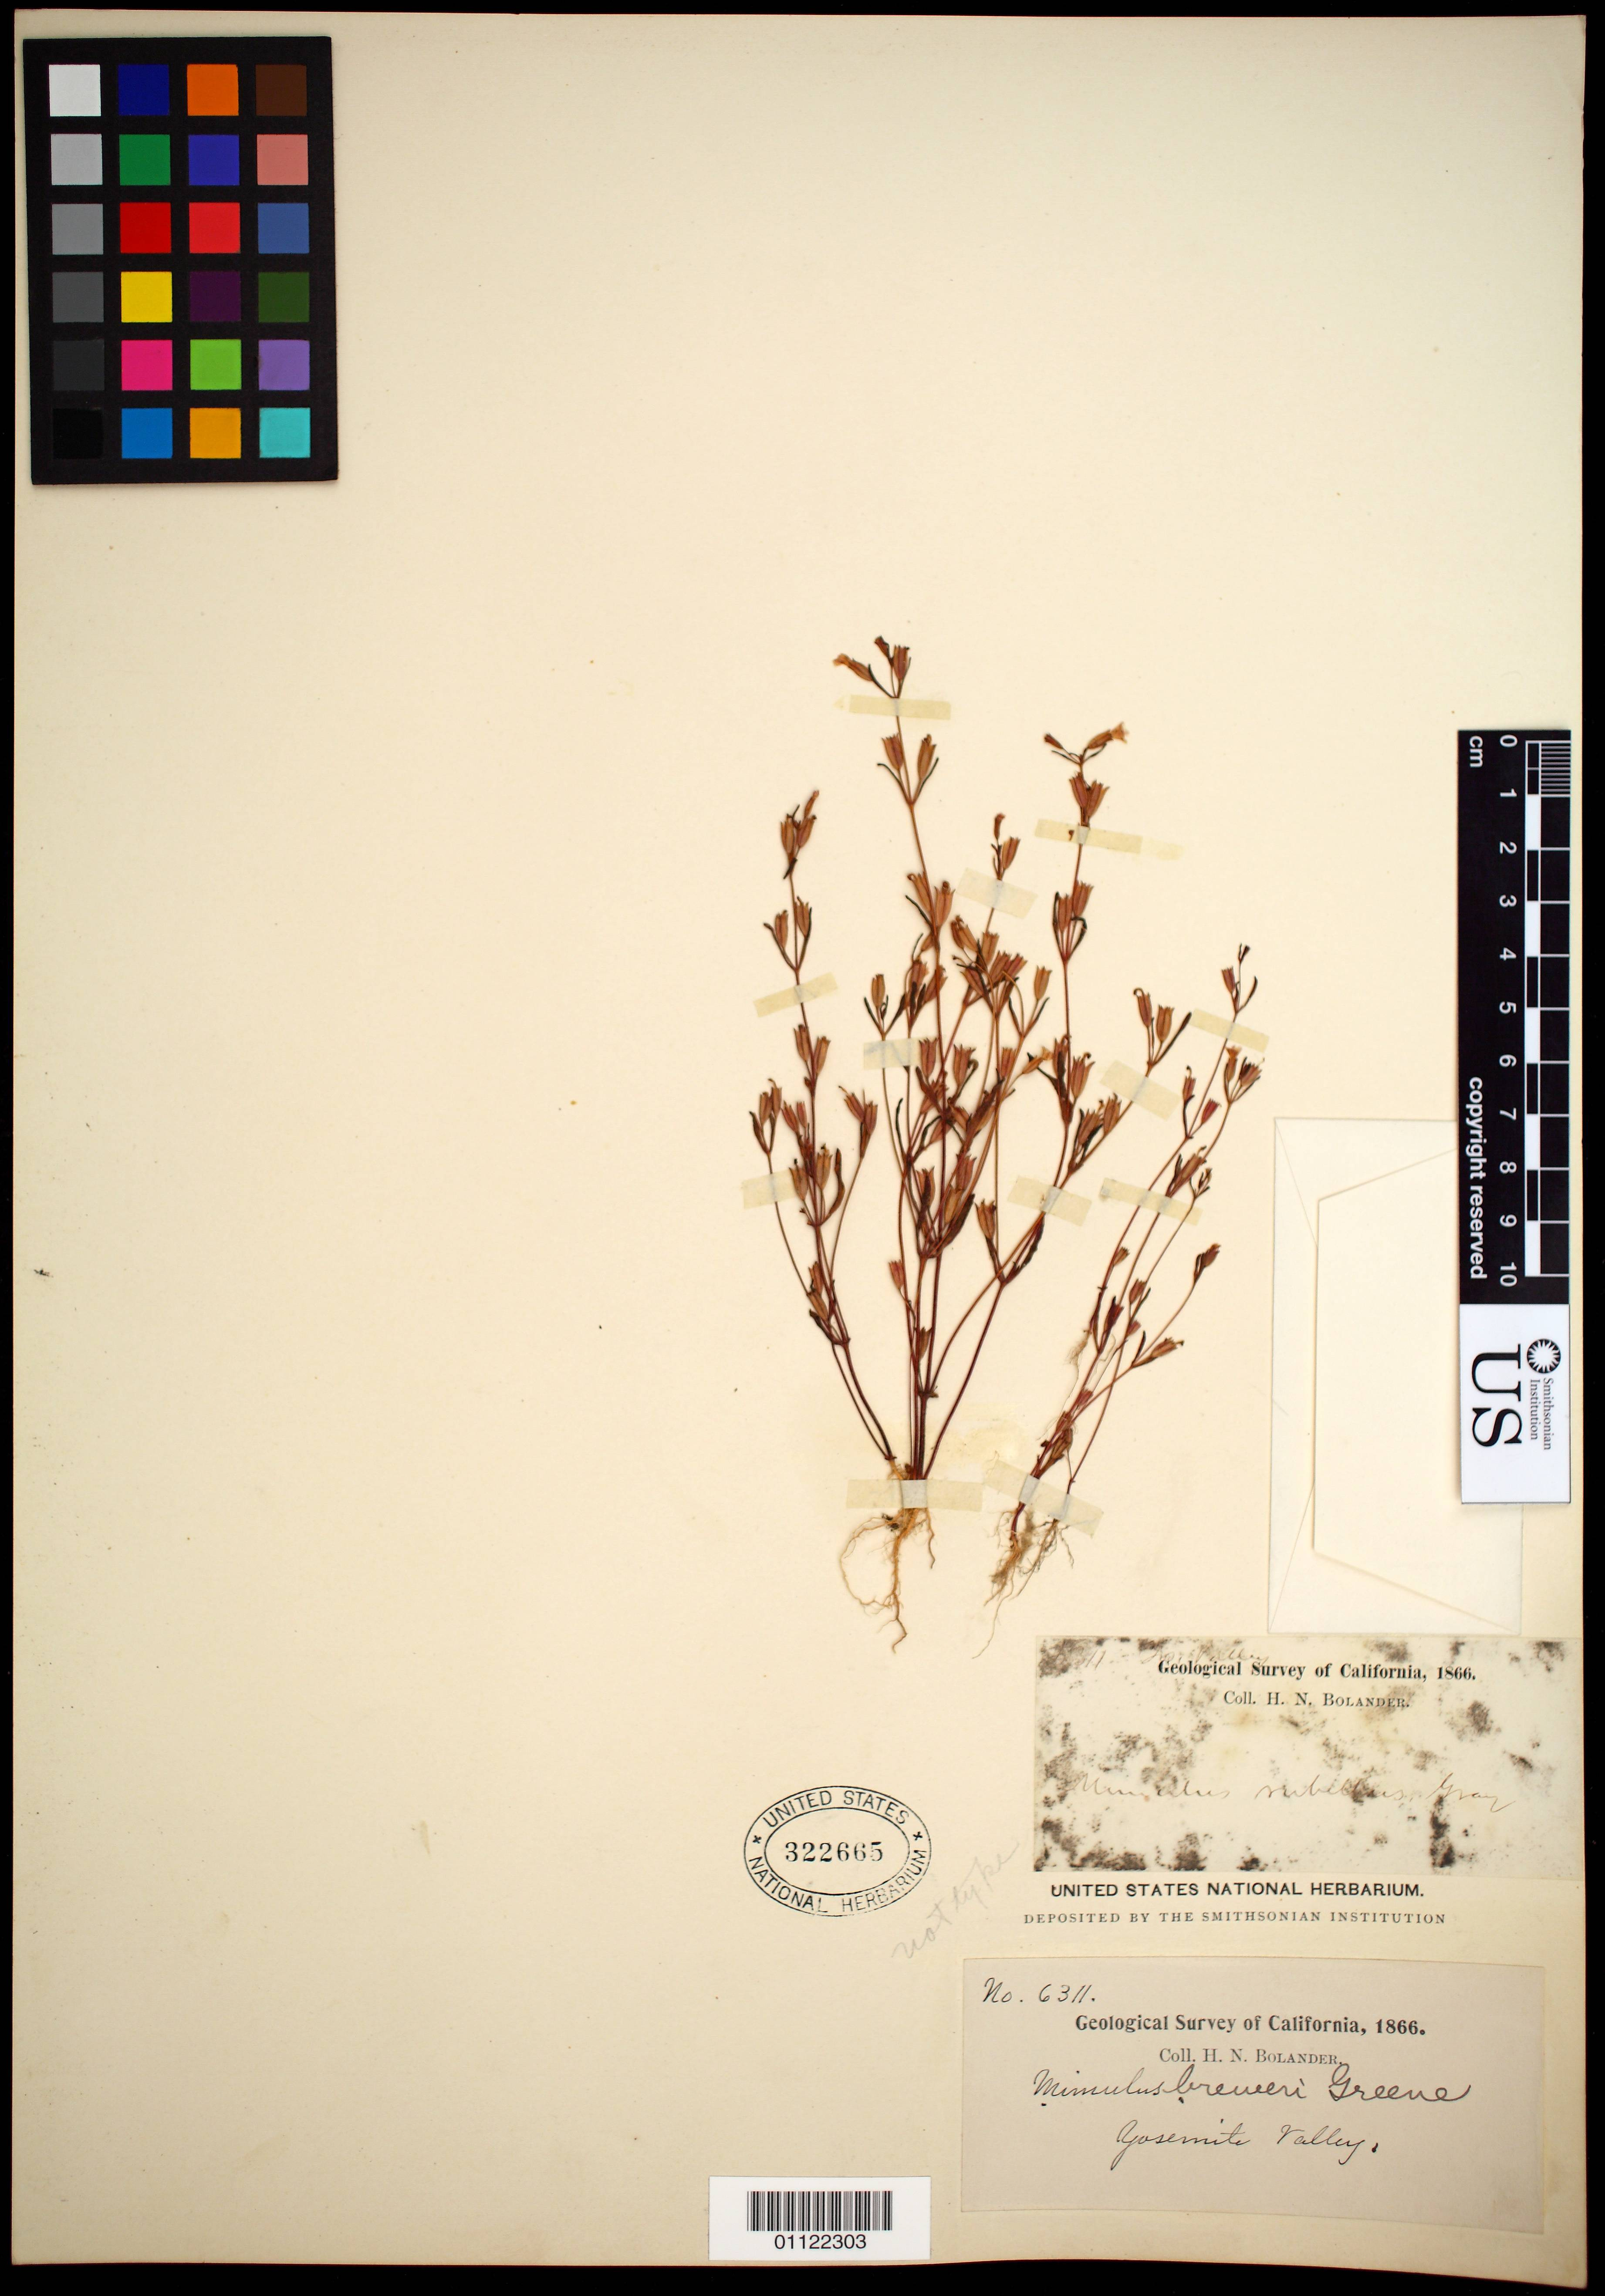 Image of Brewer's monkeyflower